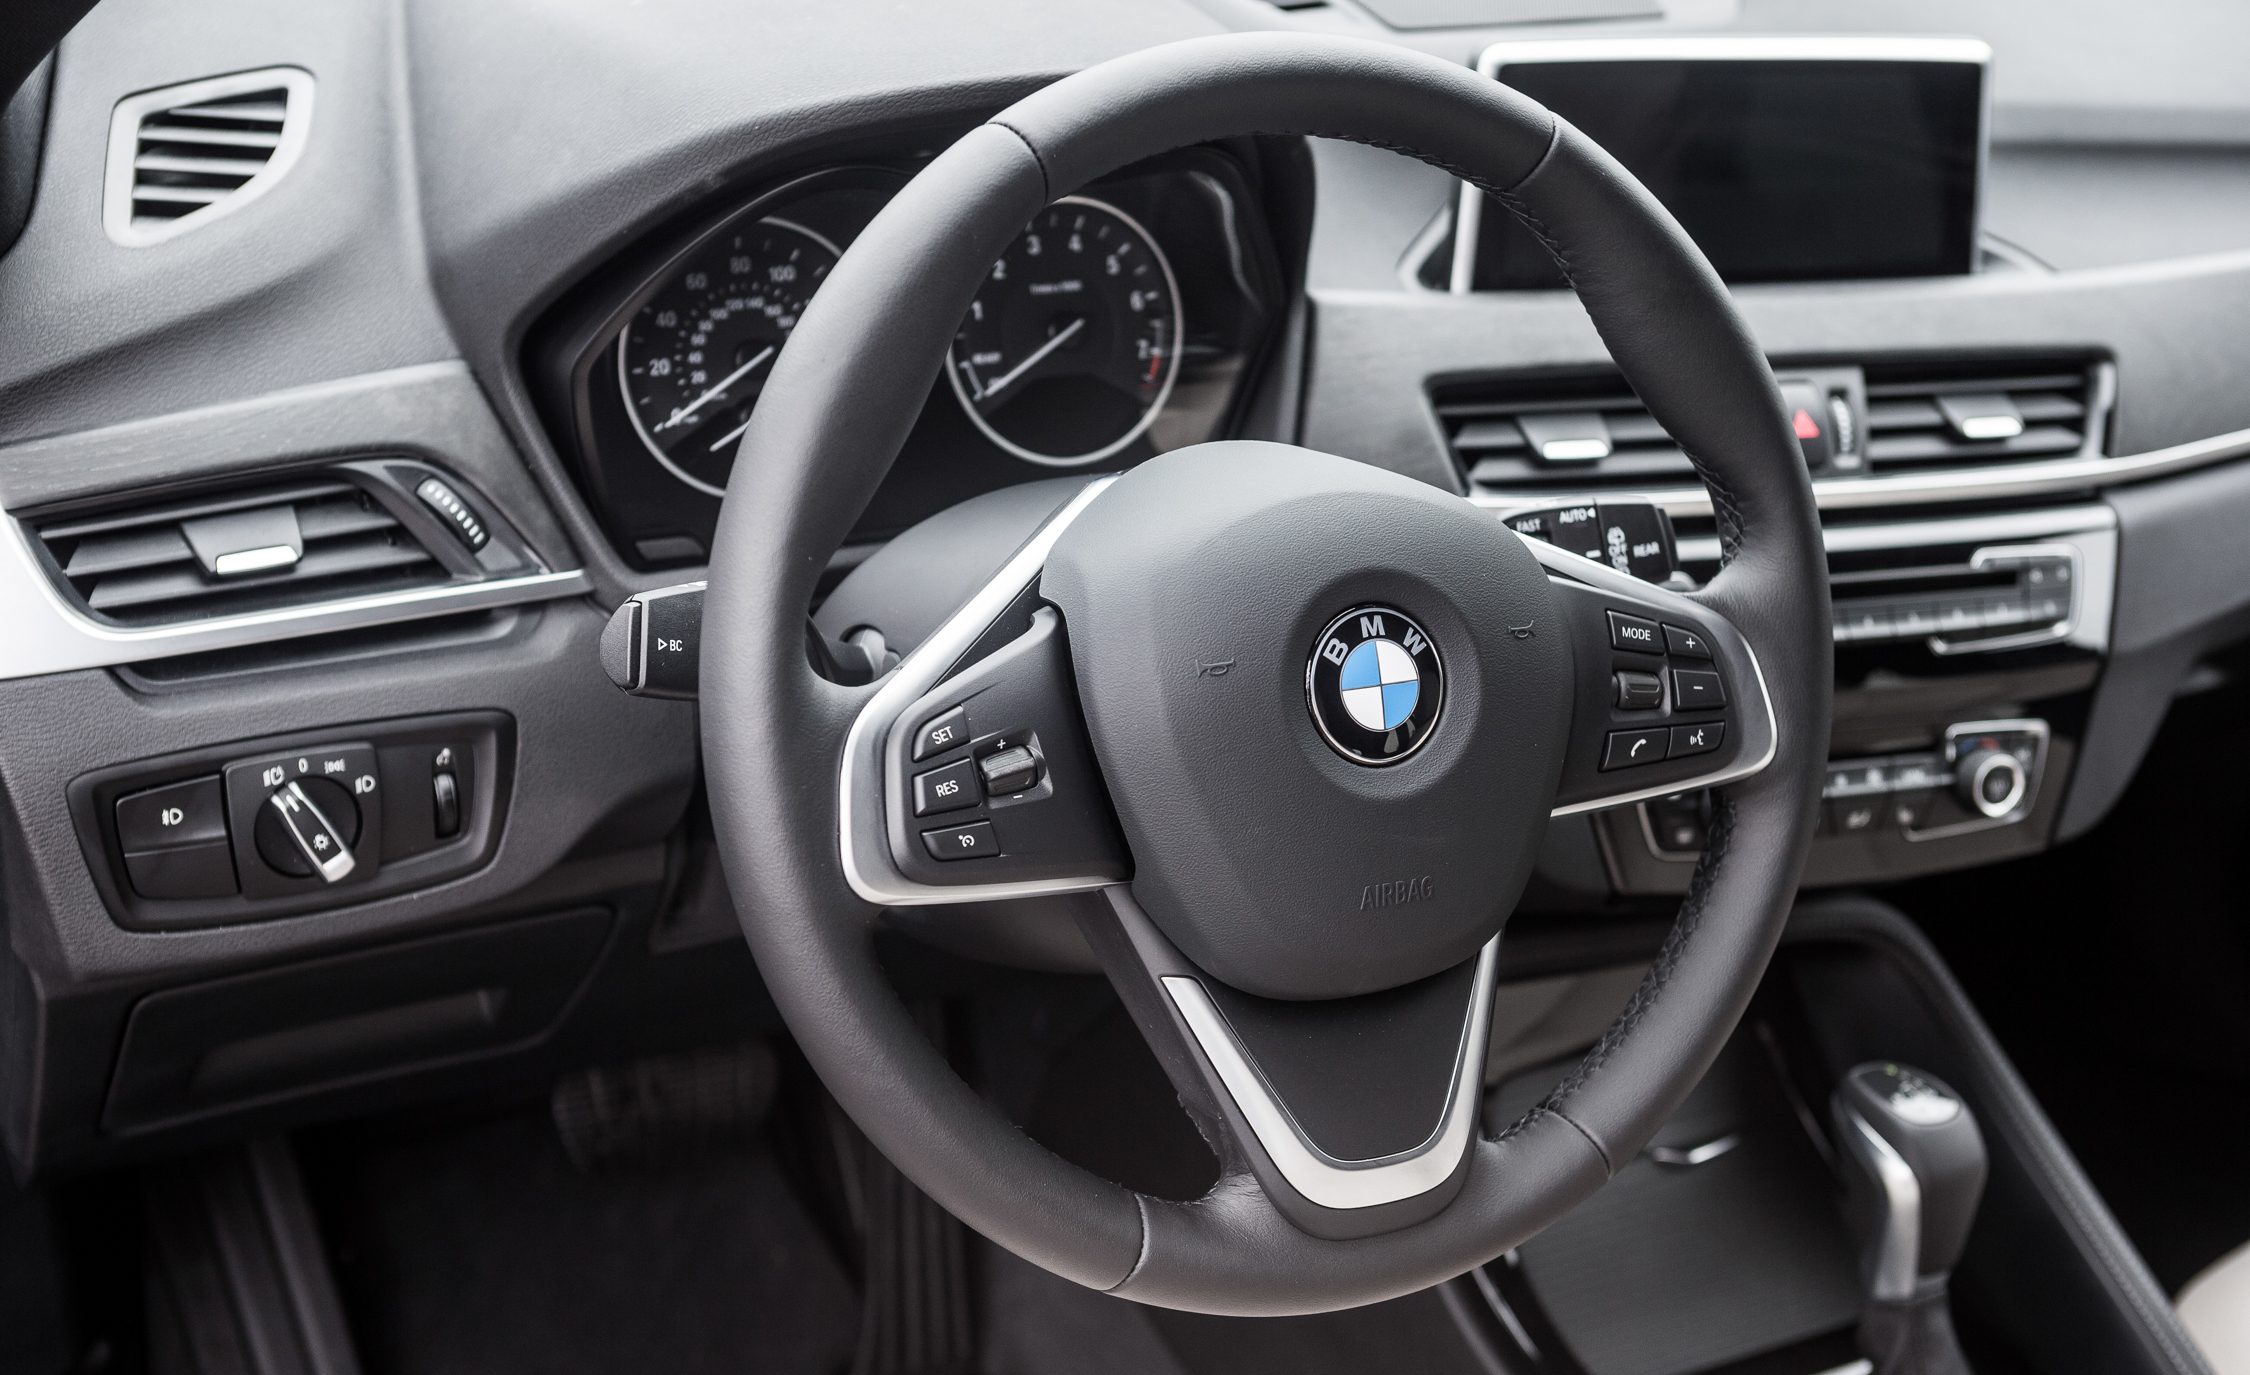 2016 BMW X1 Interior View Steering Wheel (View 9 of 36)